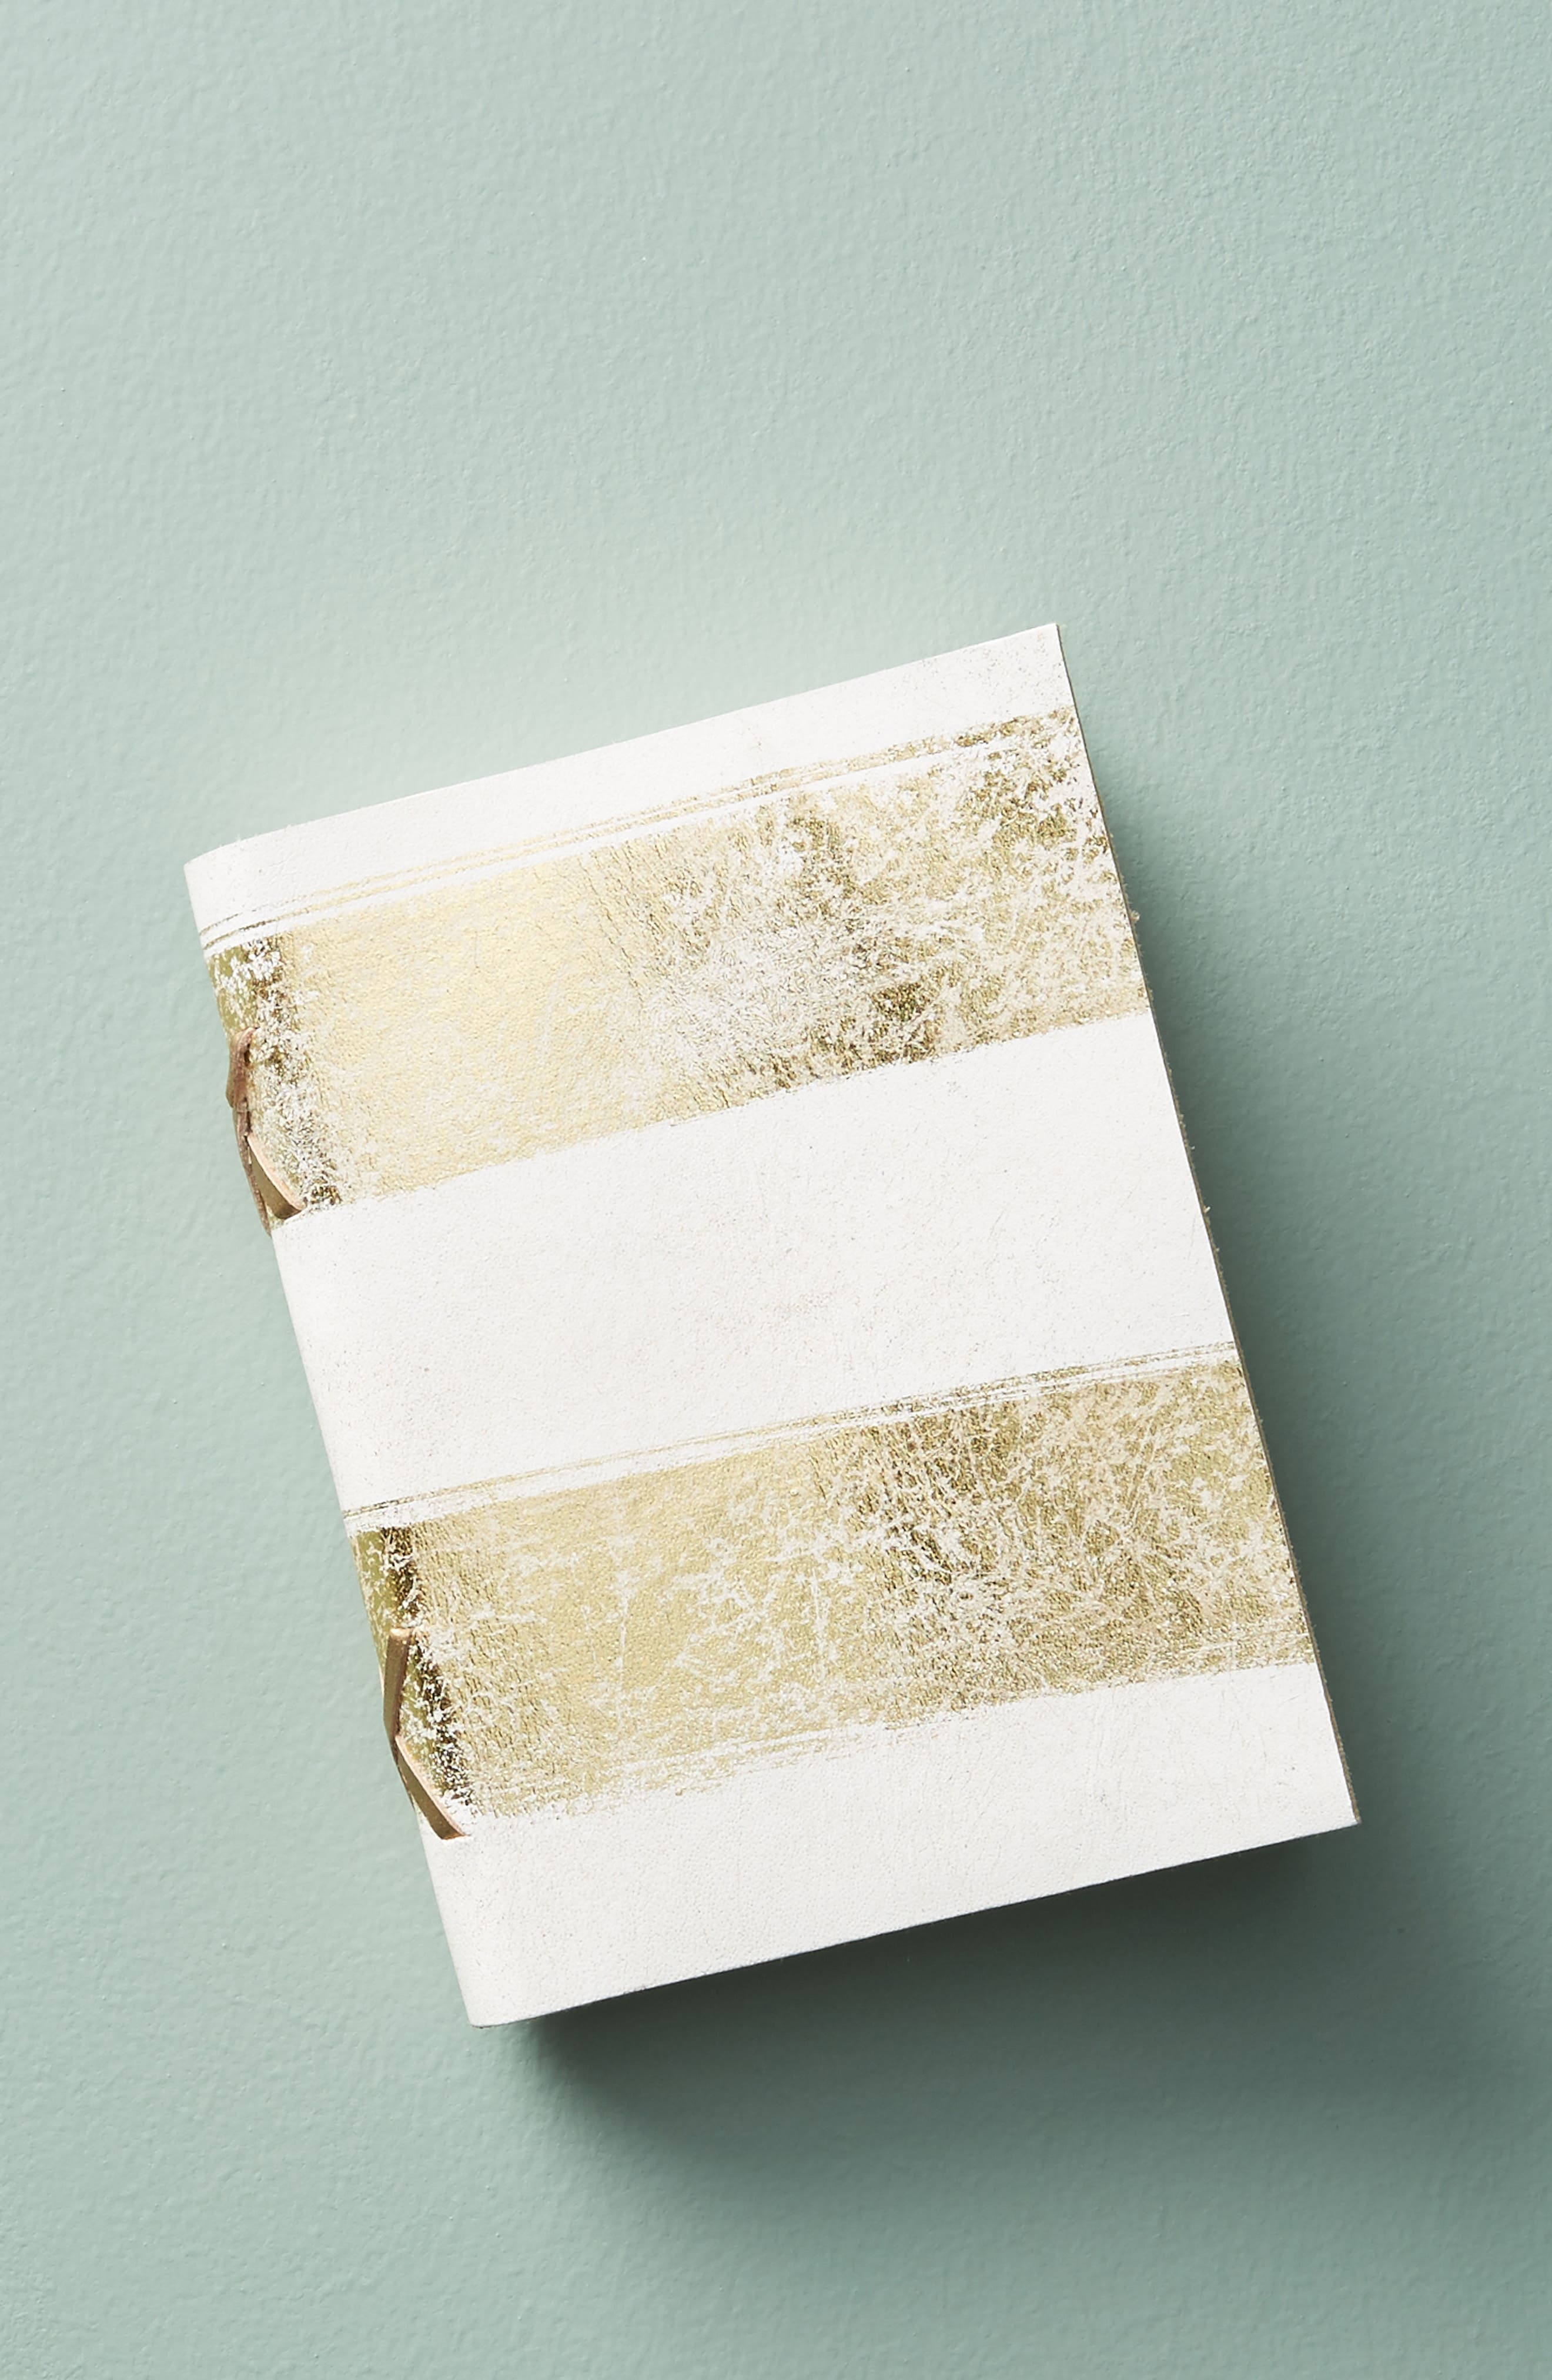 Gilded Leather Journal,                         Main,                         color, White/ Gold - Small